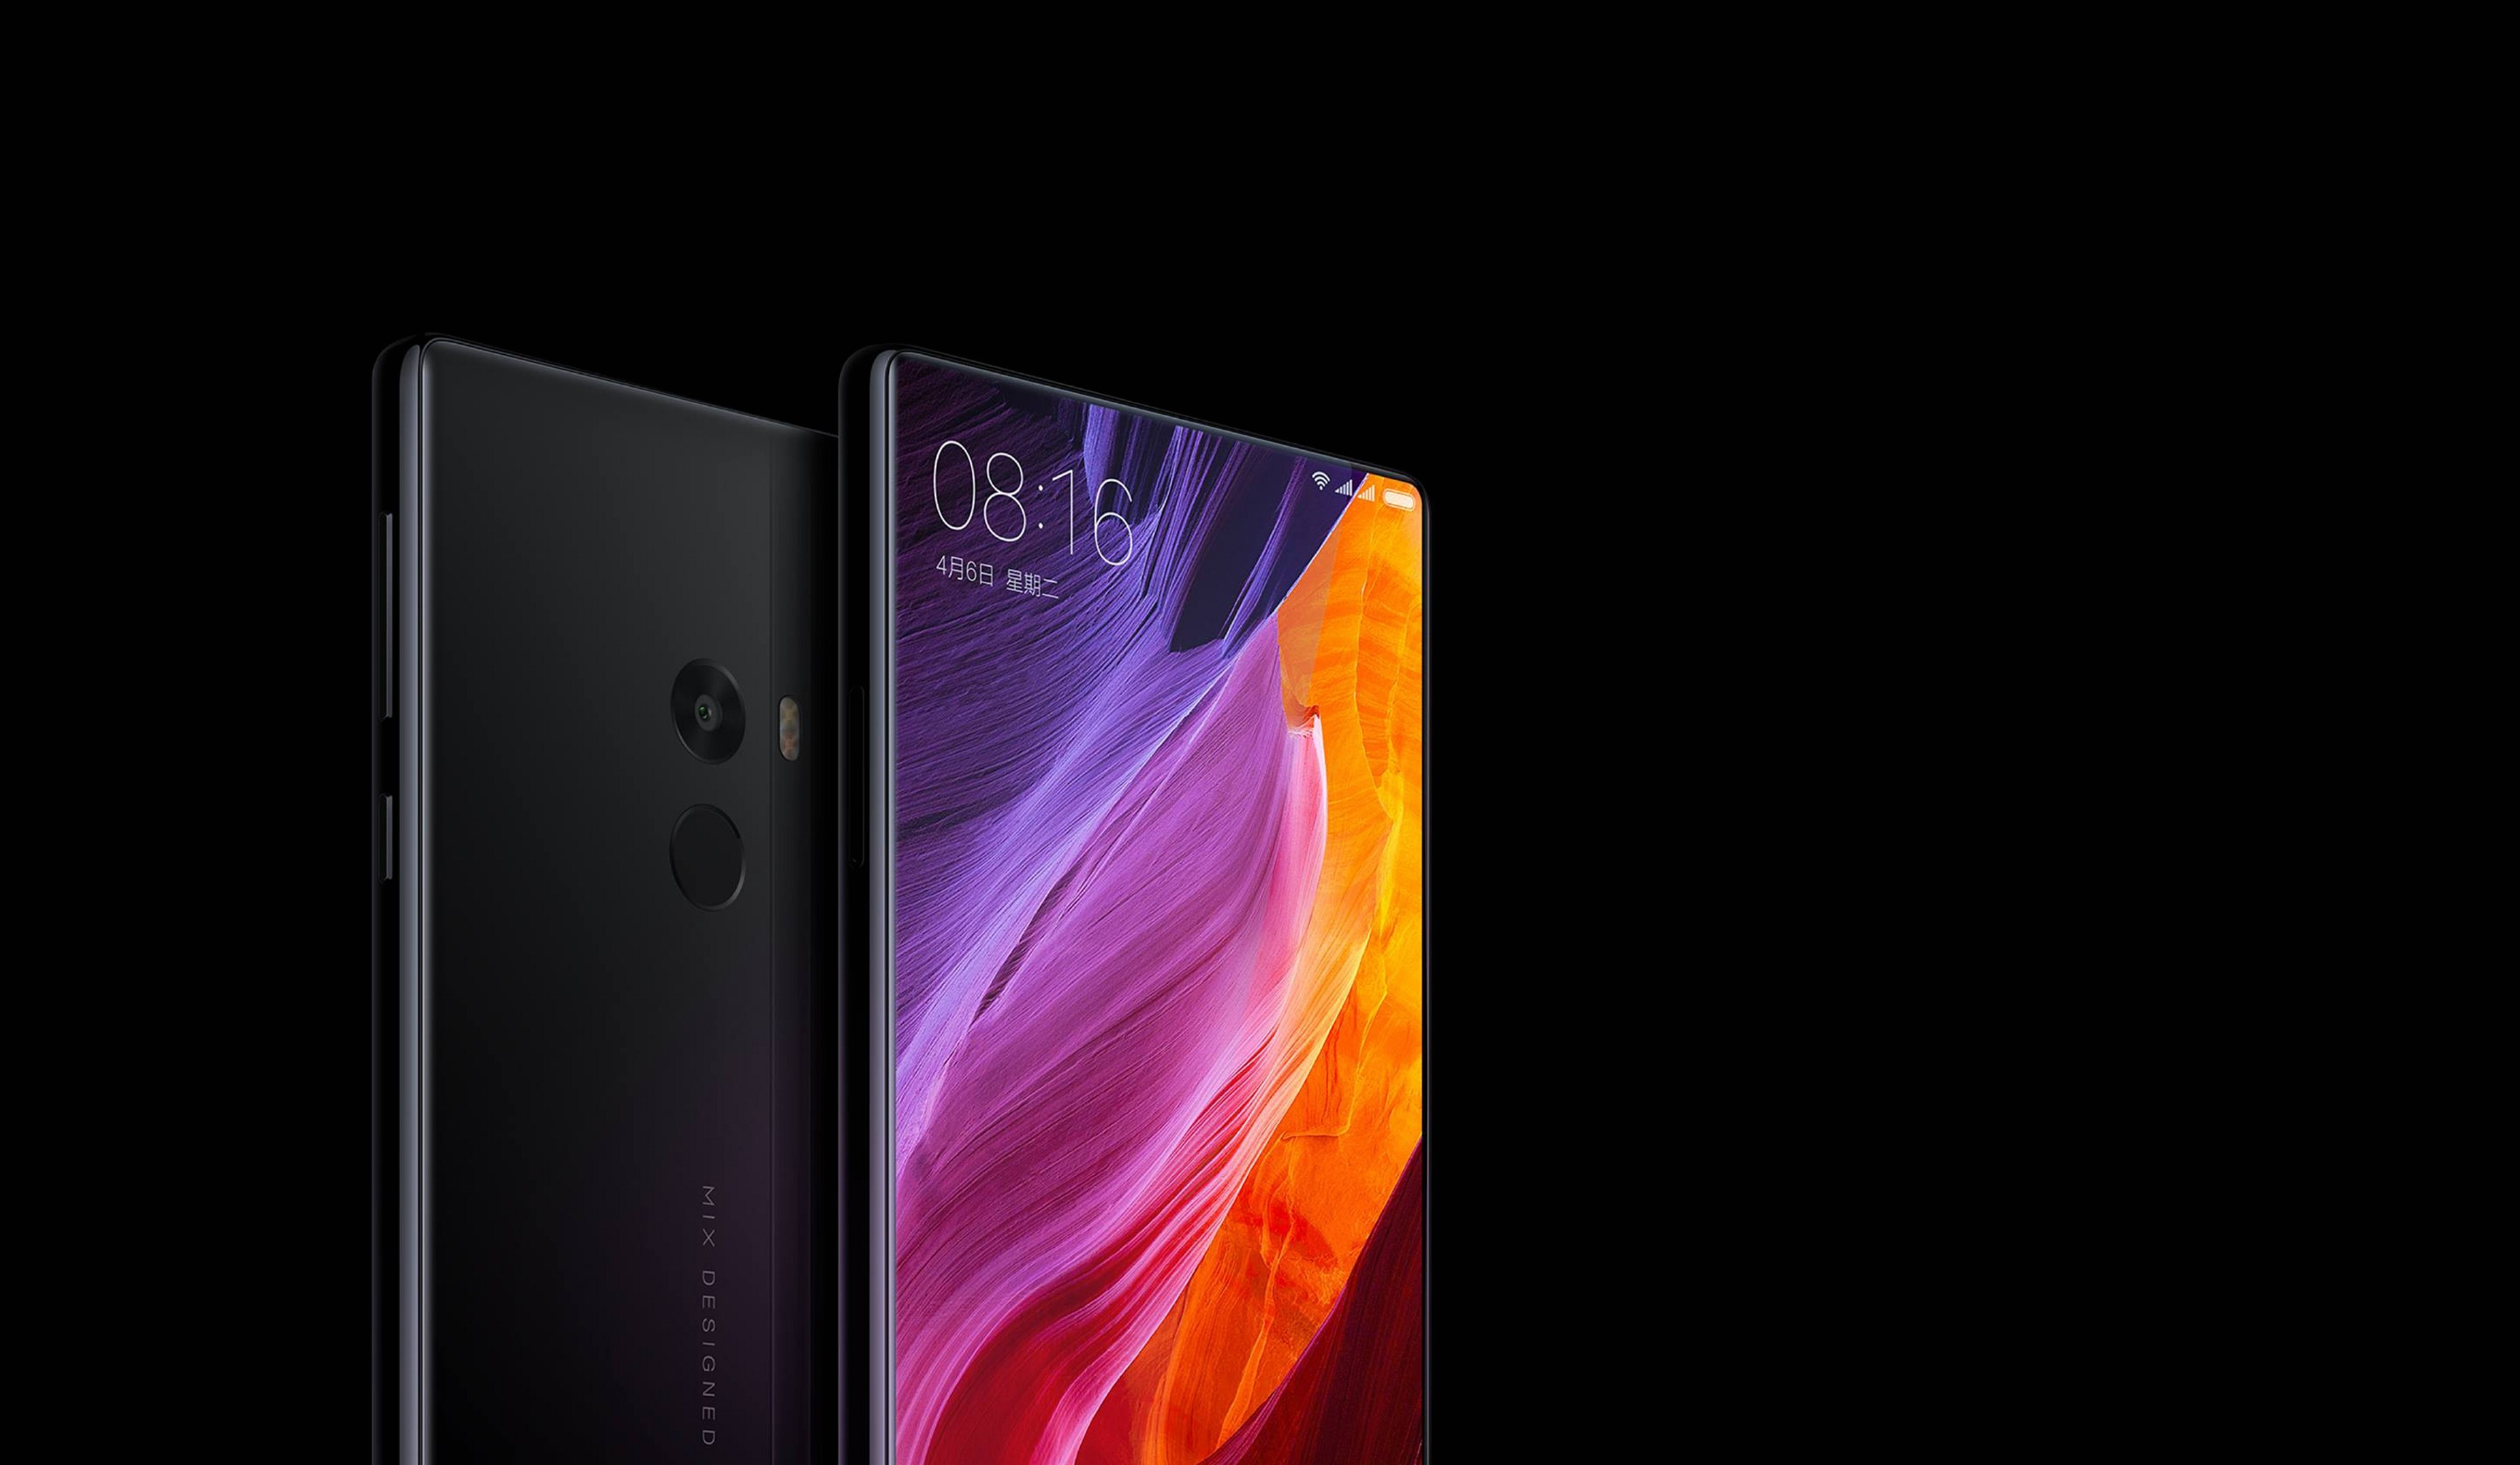 Samsung Galaxy On5 And On7 Stock Wallpapers Download: Wallpaper Xiaomi Mi MIX, Review, Best Smartphones, Hi-Tech